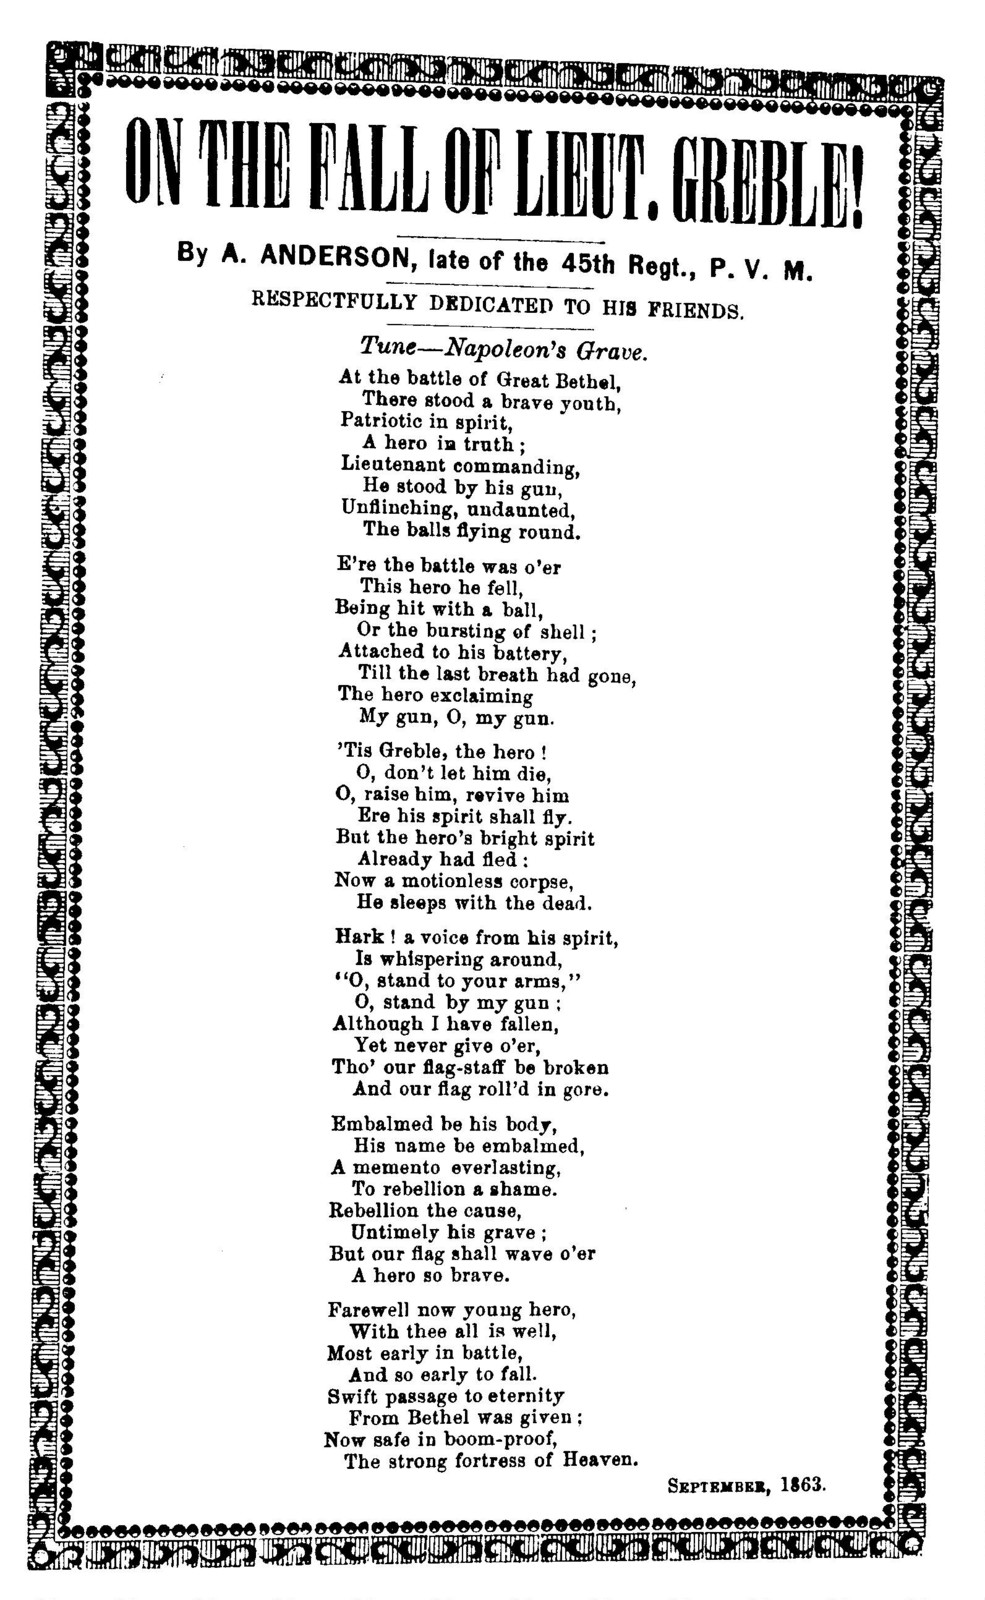 On the fall of Lieut. Gremble! By A. Anderson. Tune - Napoleon's grave. Sept. 1863